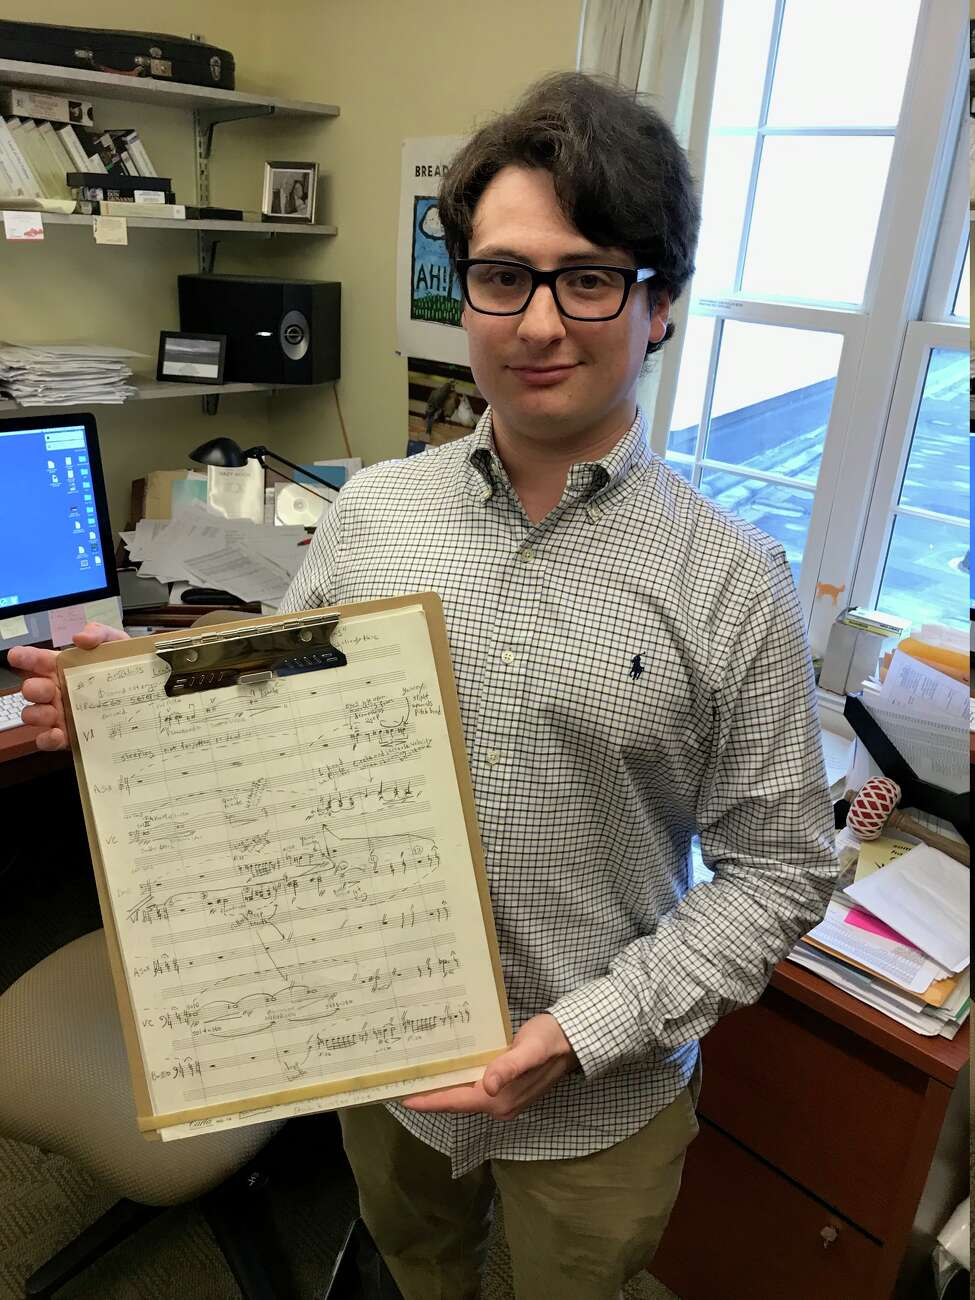 Max Stwertka, a Union College senior, composed a tone poem in seven movements to honor his famous violinist great-granduncle, Julius Stwertka, who died in the Holocaust